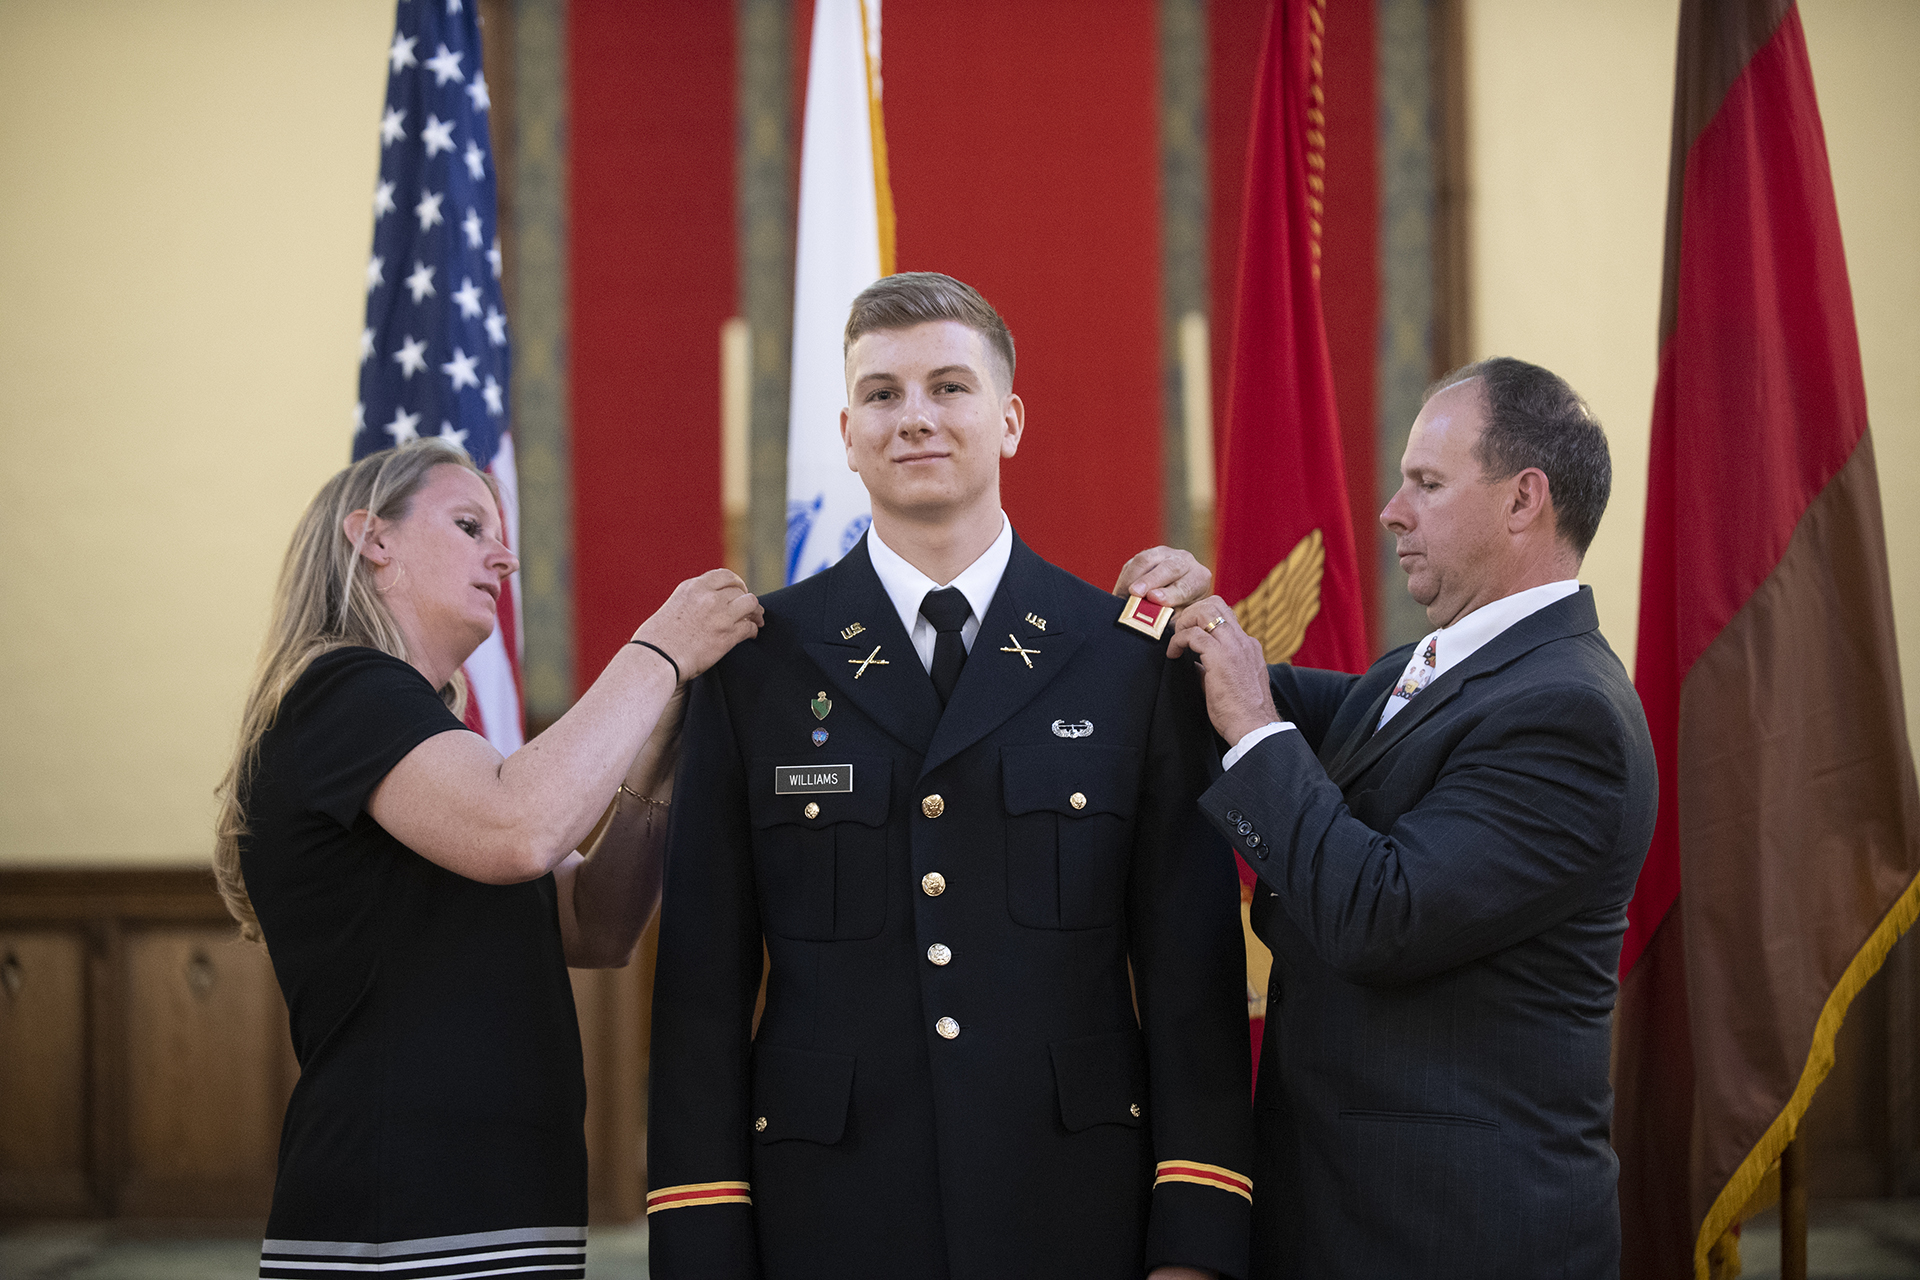 Garnet Williams with his parents at commissioning ceremony in May 2019.